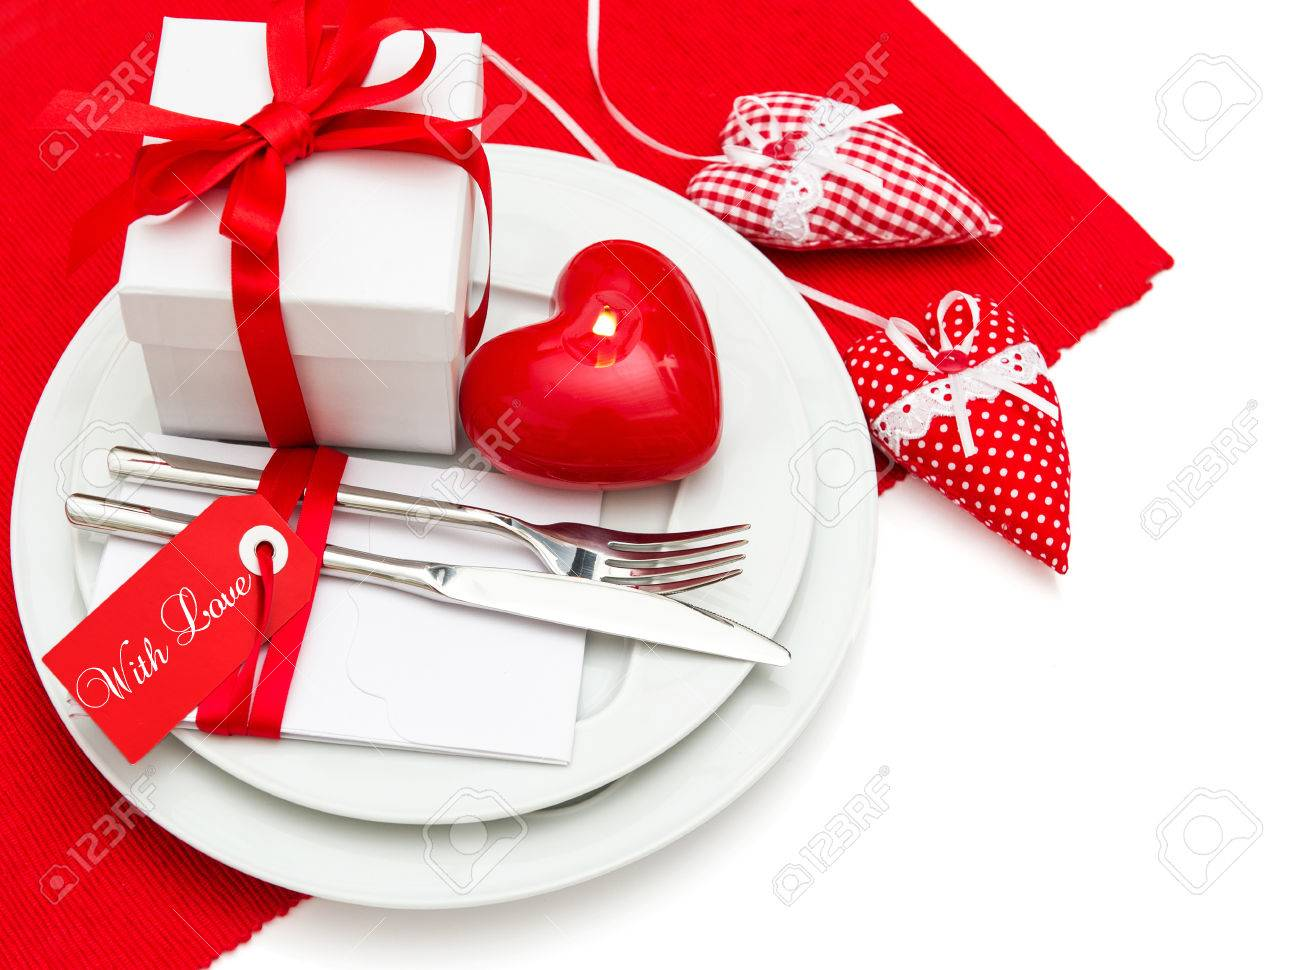 Candle Light Dinner Table Setting Part - 36: Valentines Day Romantic Candle Light Dinner Table Place Setting Decoration  In Red And White With Hearts